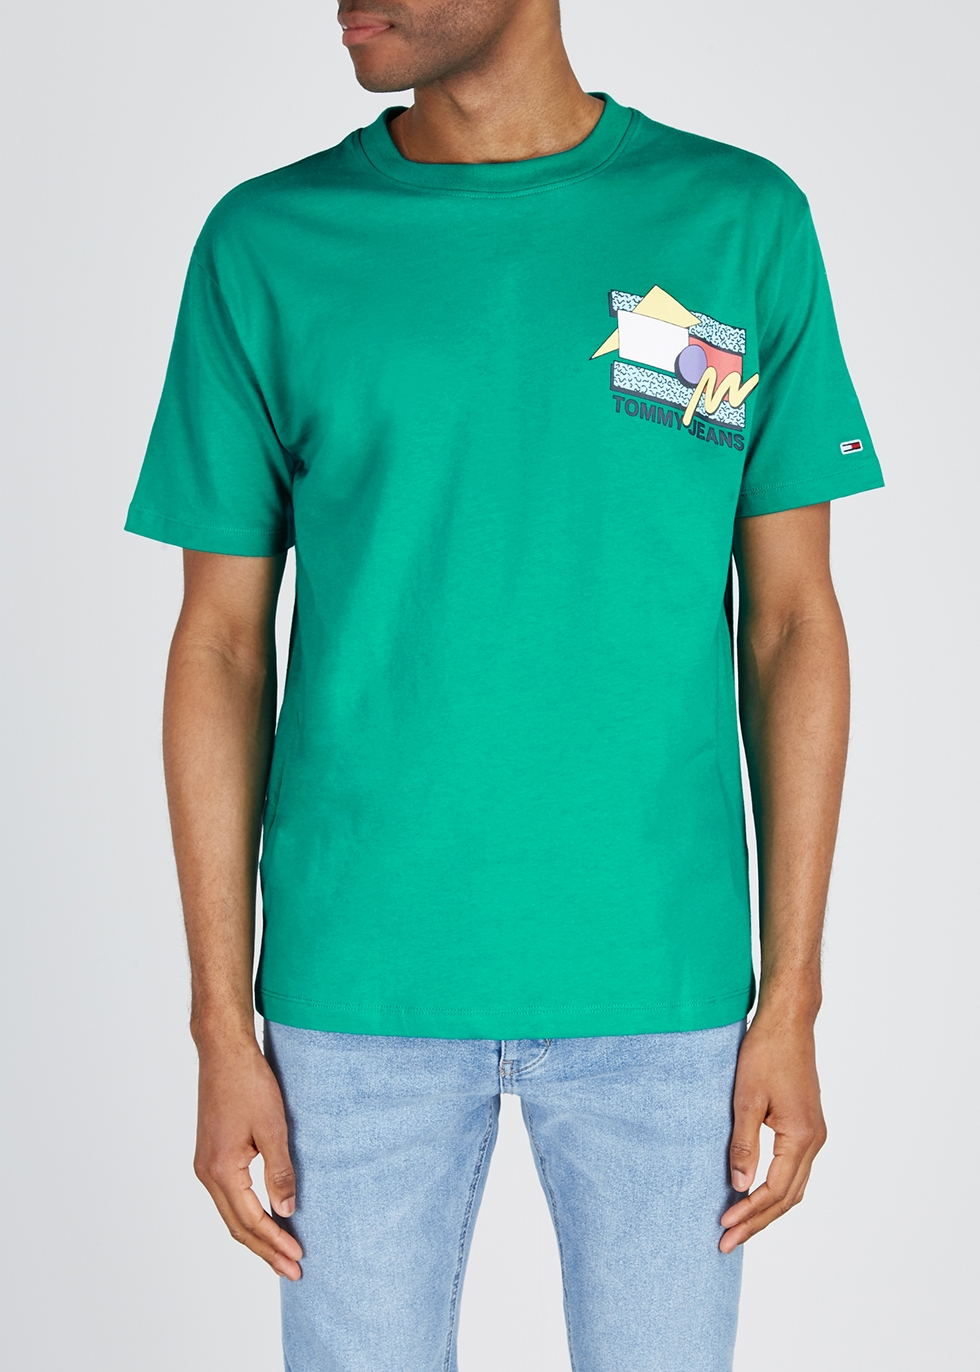 Teal printed cotton T-shirt - Tommy Jeans